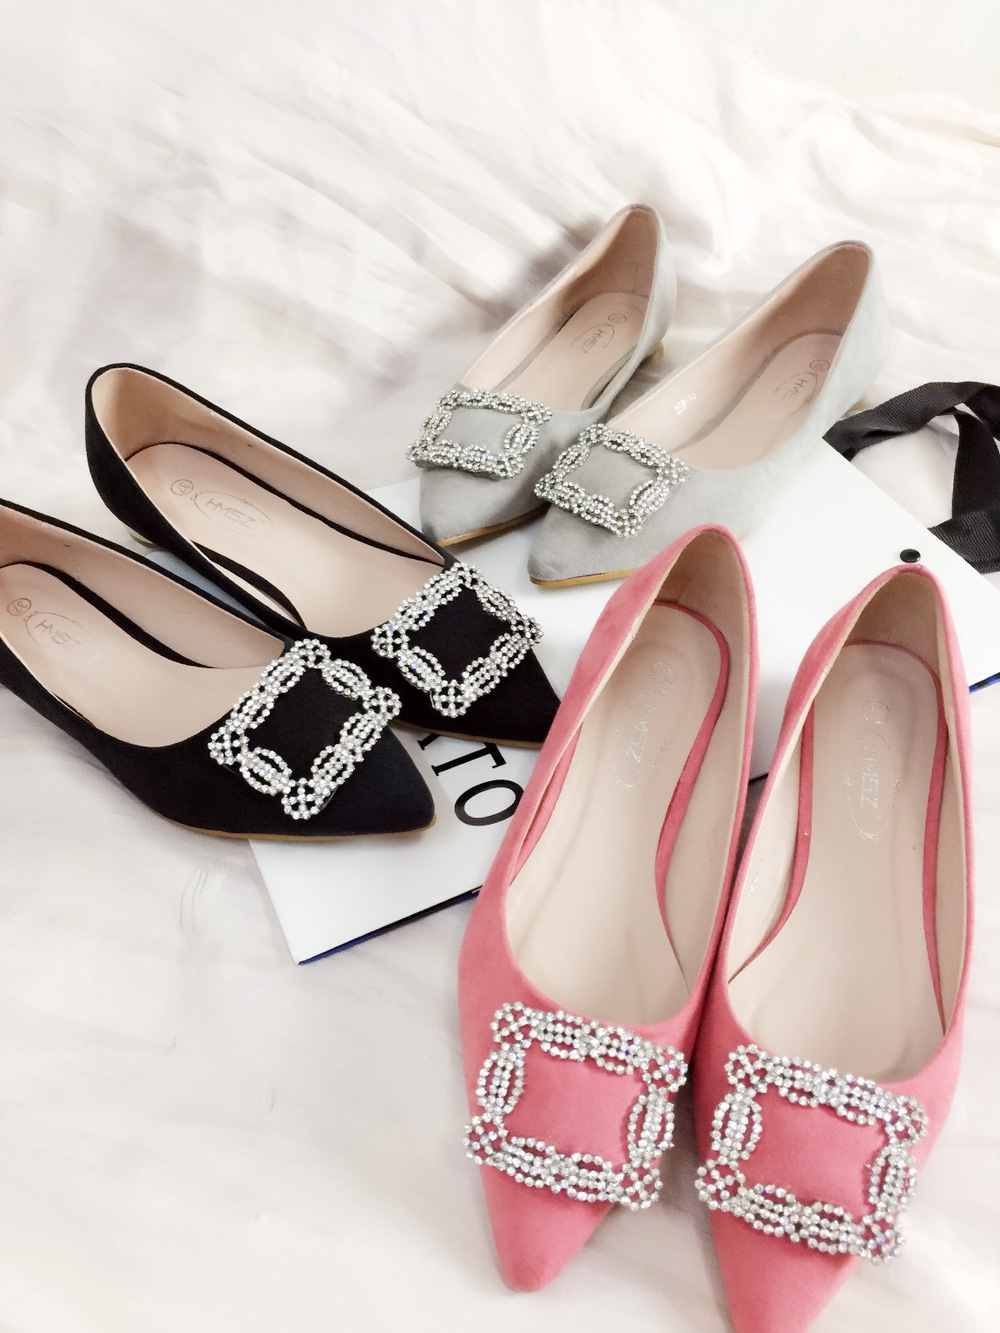 Flat shoes in the spring of 2015 the new all match fashion women shoes diamond wedding